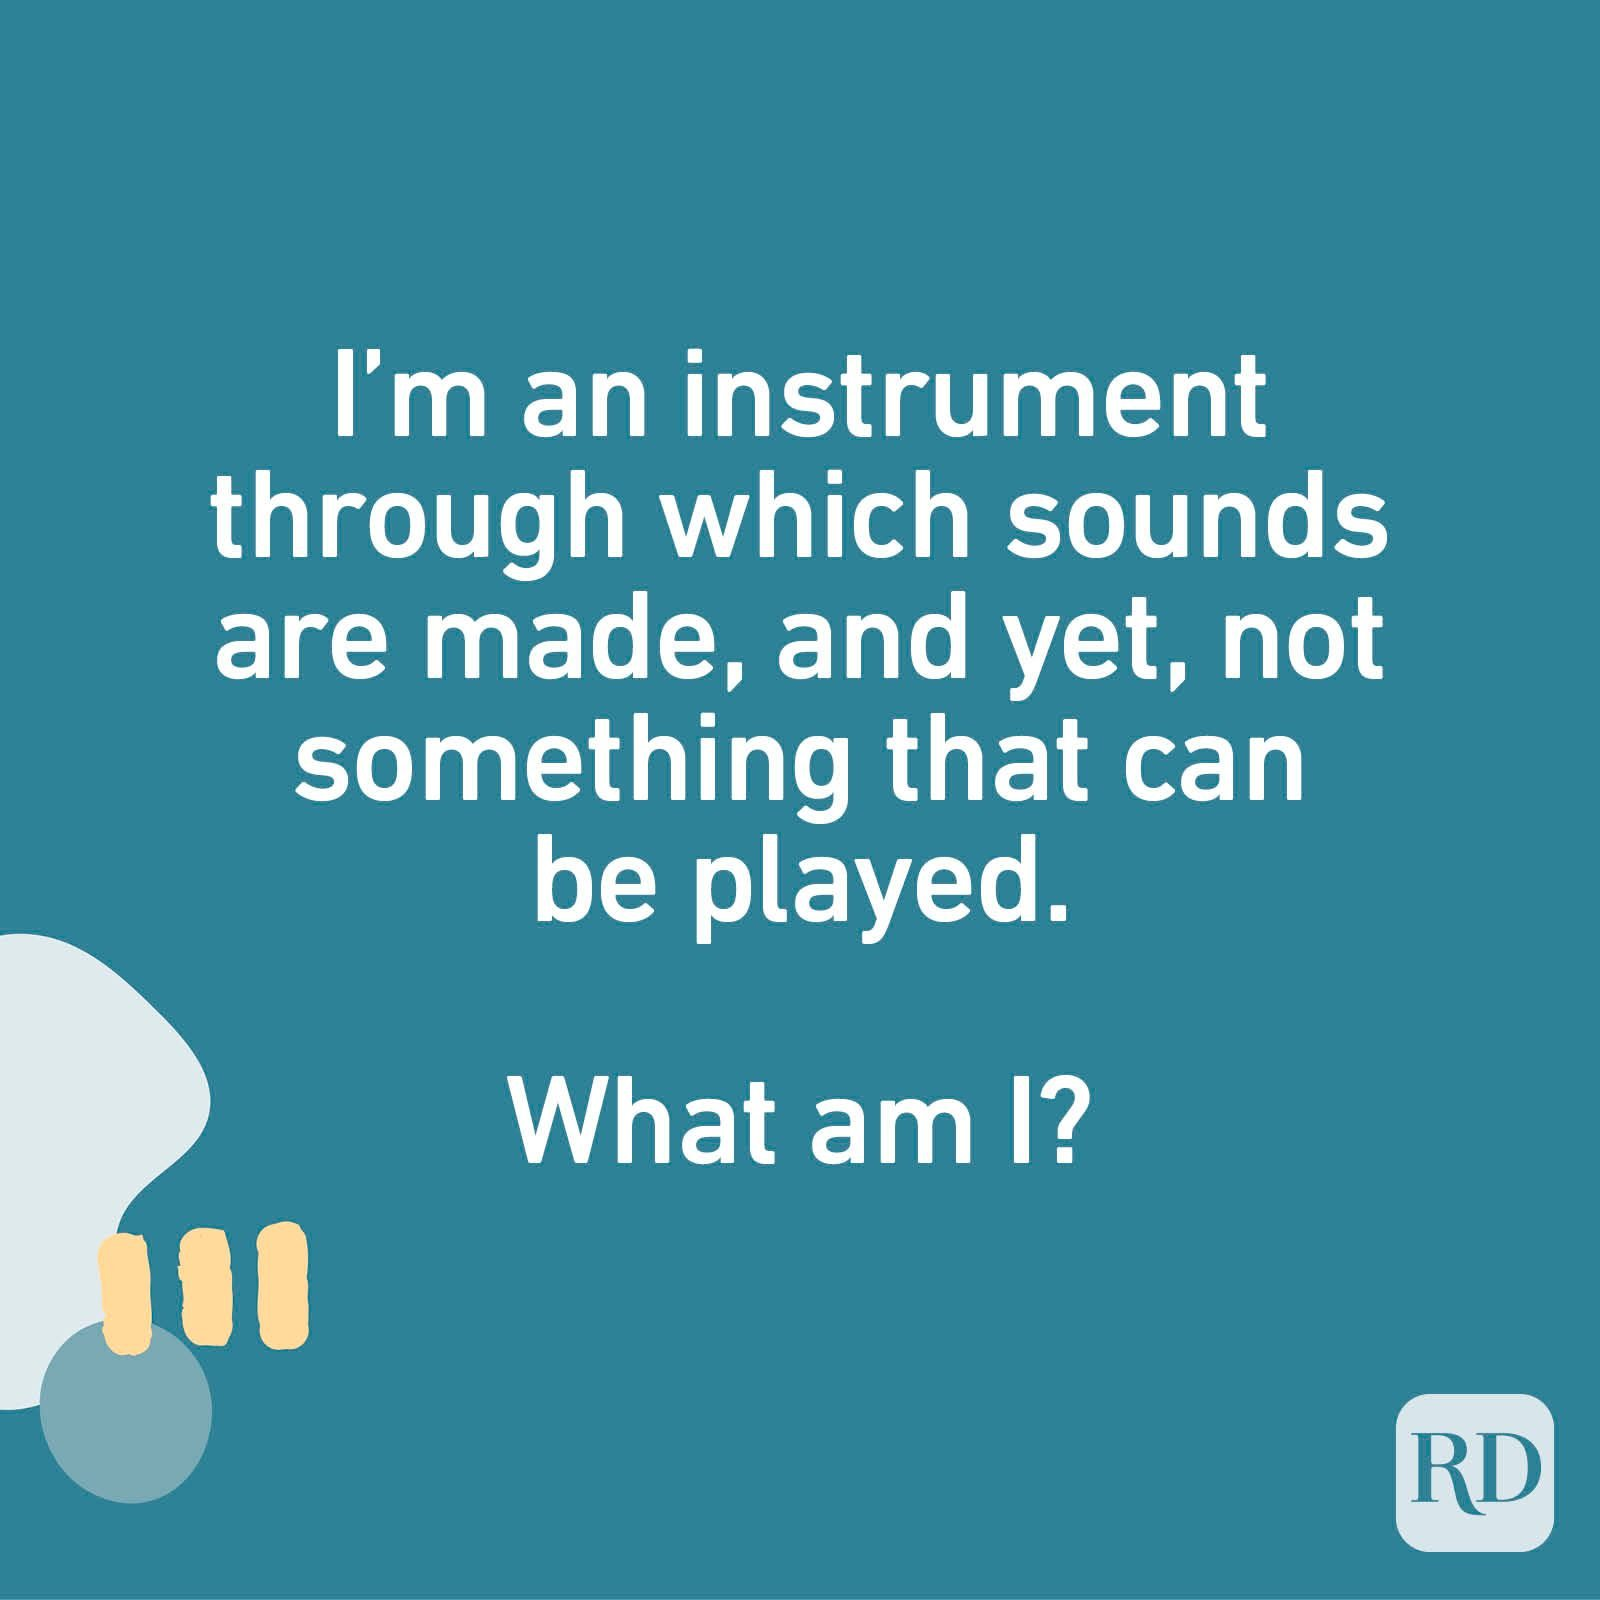 I'm an instrument through which sounds are made, and yet, not something that can be played. What am I?